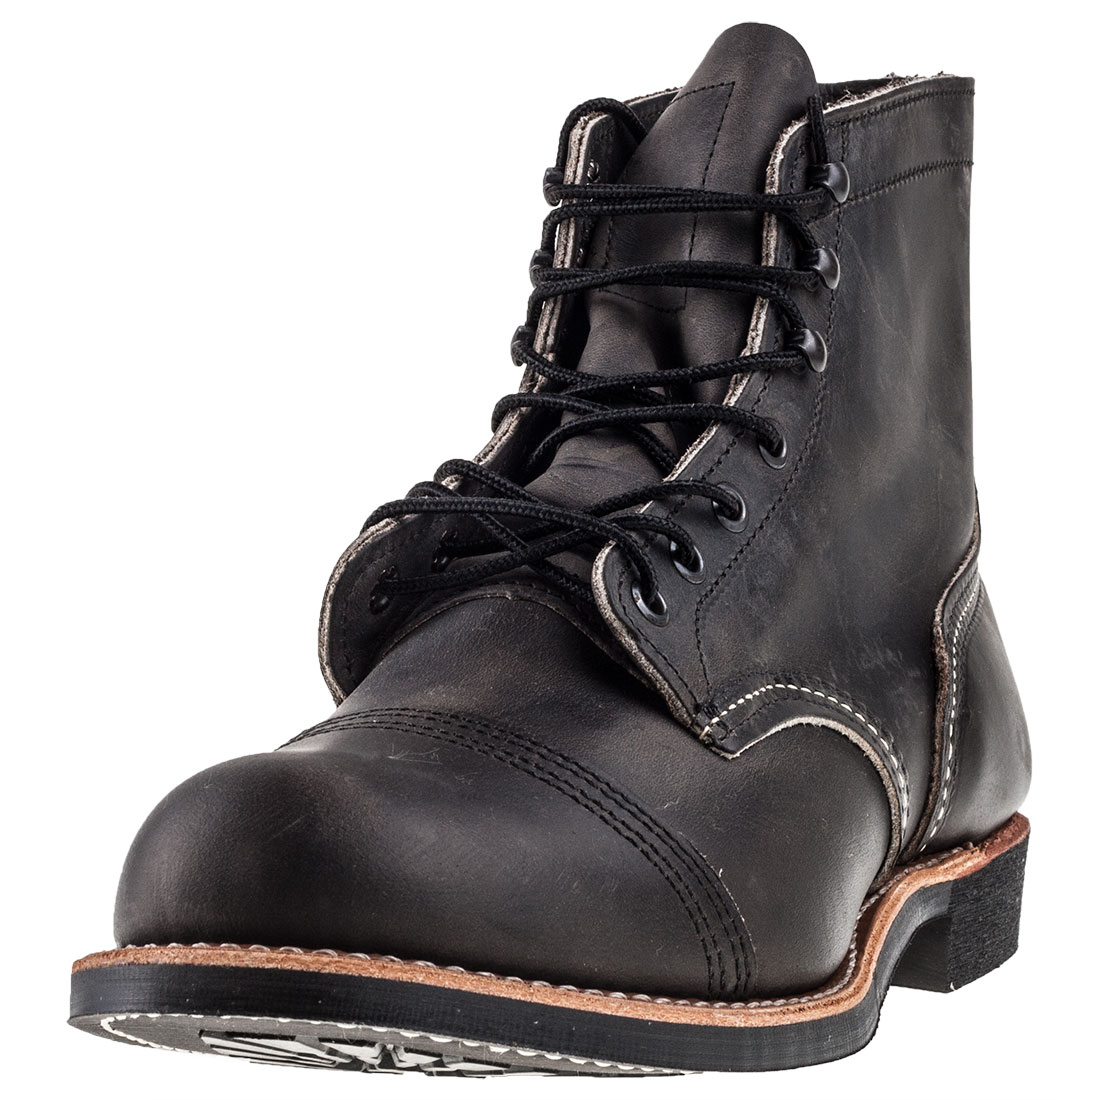 2019 Ultimo Disegno Red Wing Iron Ranger Uomo Charcoal Pelle Stivali Casuale